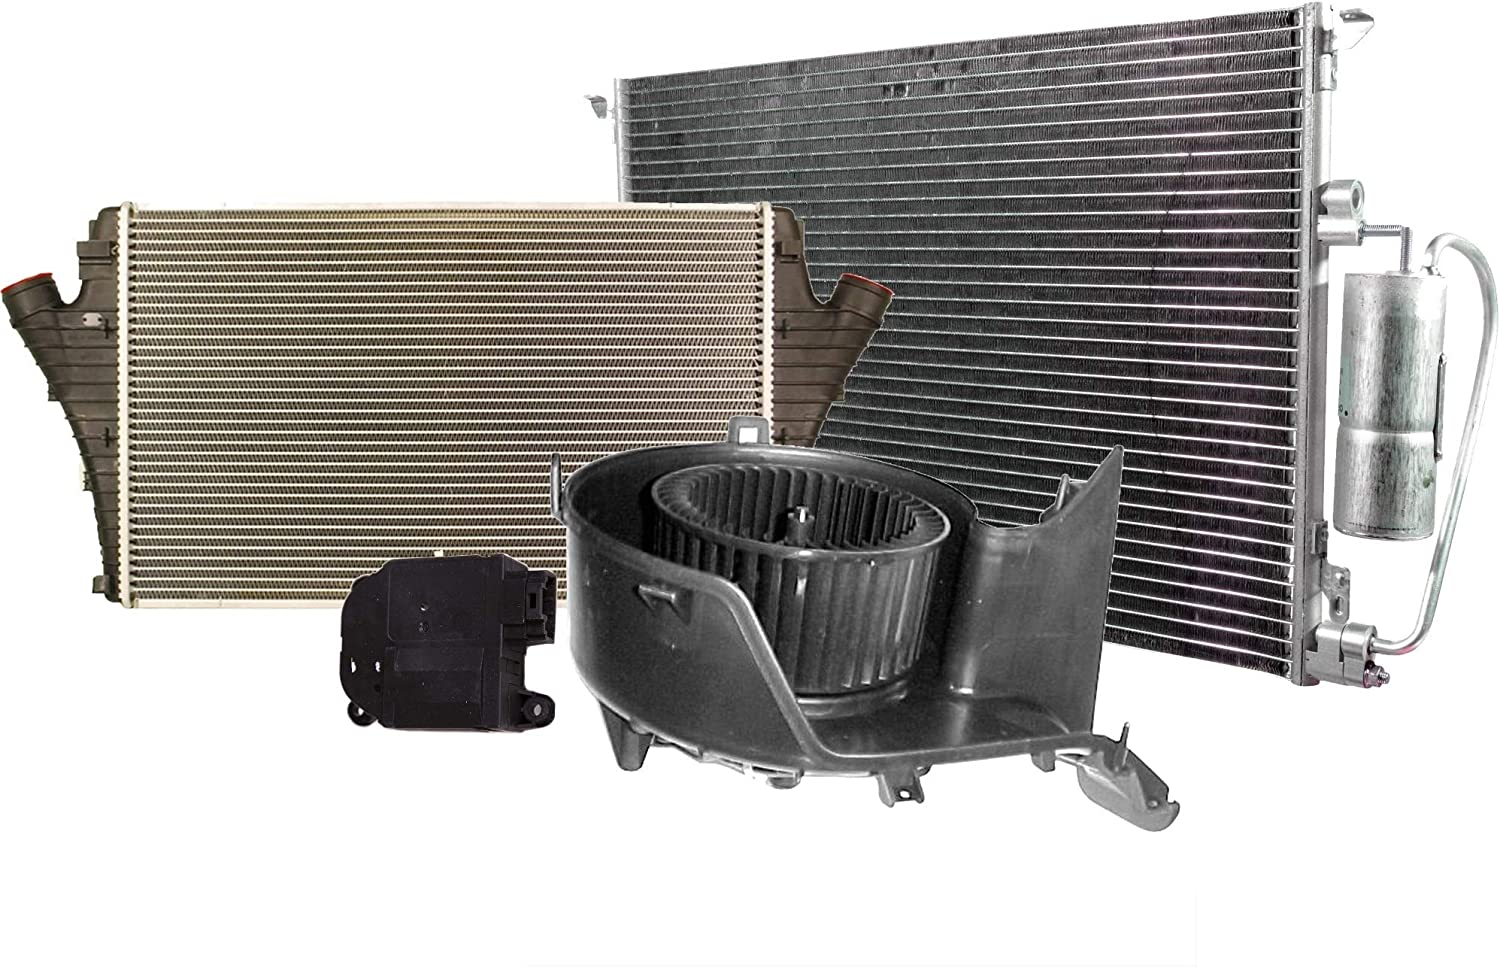 HVAC Blower Motor with Max outlet 84% OFF Actuator Intercooler Ki Condenser C and A